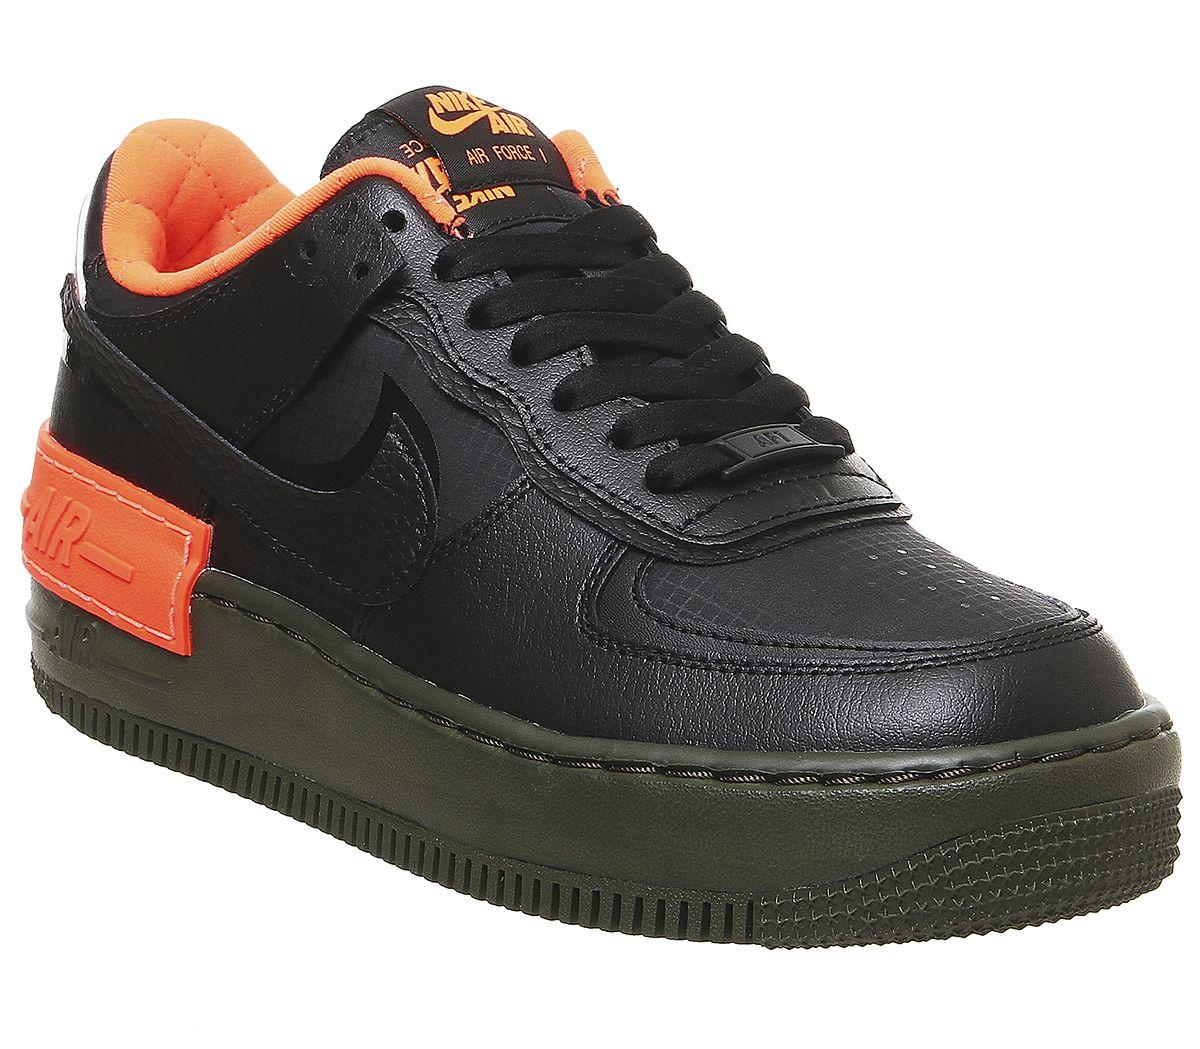 Air Force 1 Shadow Trainers in Black